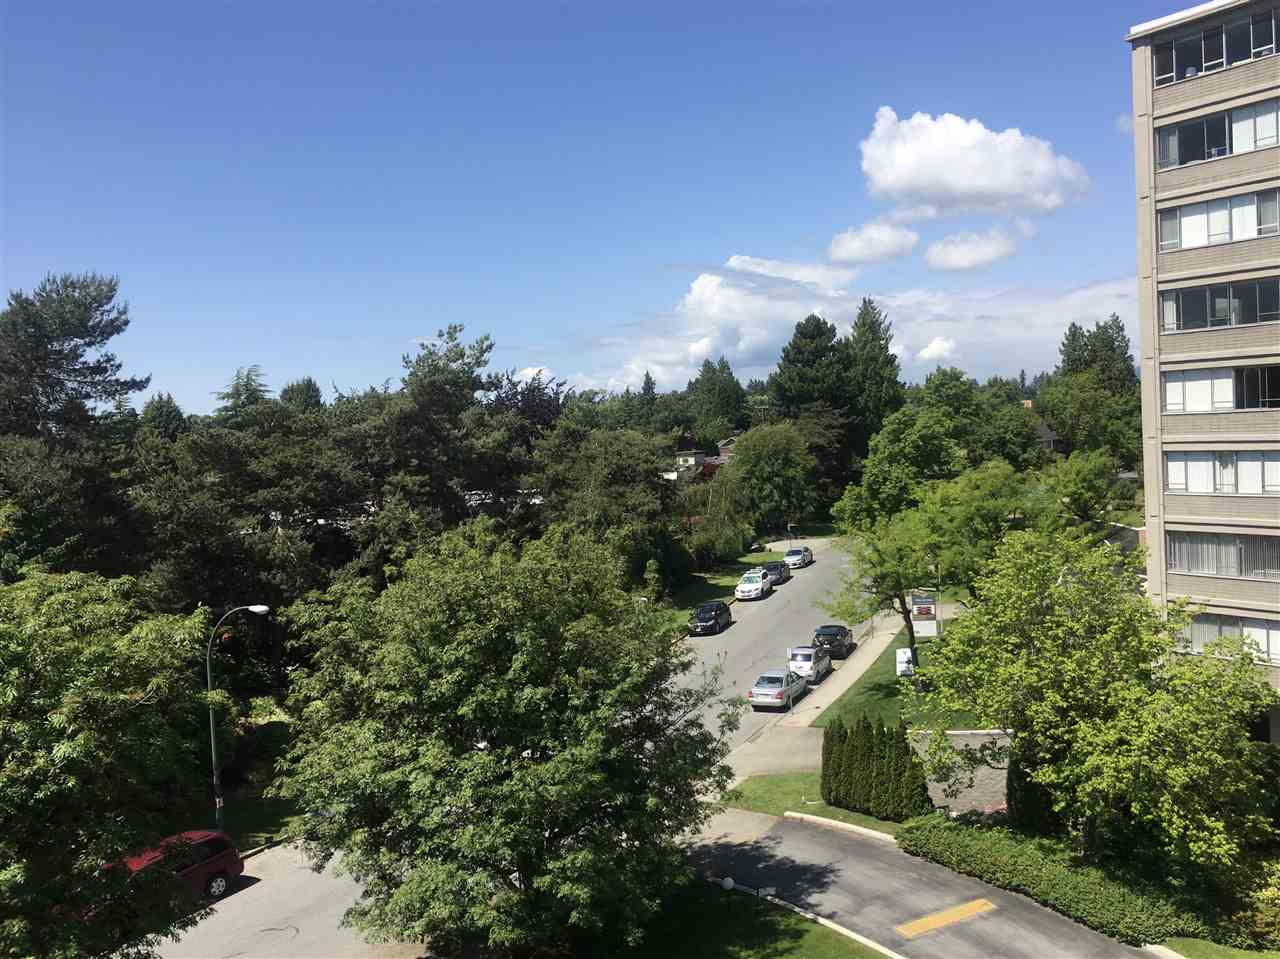 404 6026 TISDALL STREET - Oakridge VW Apartment/Condo for sale, 1 Bedroom (R2460540)